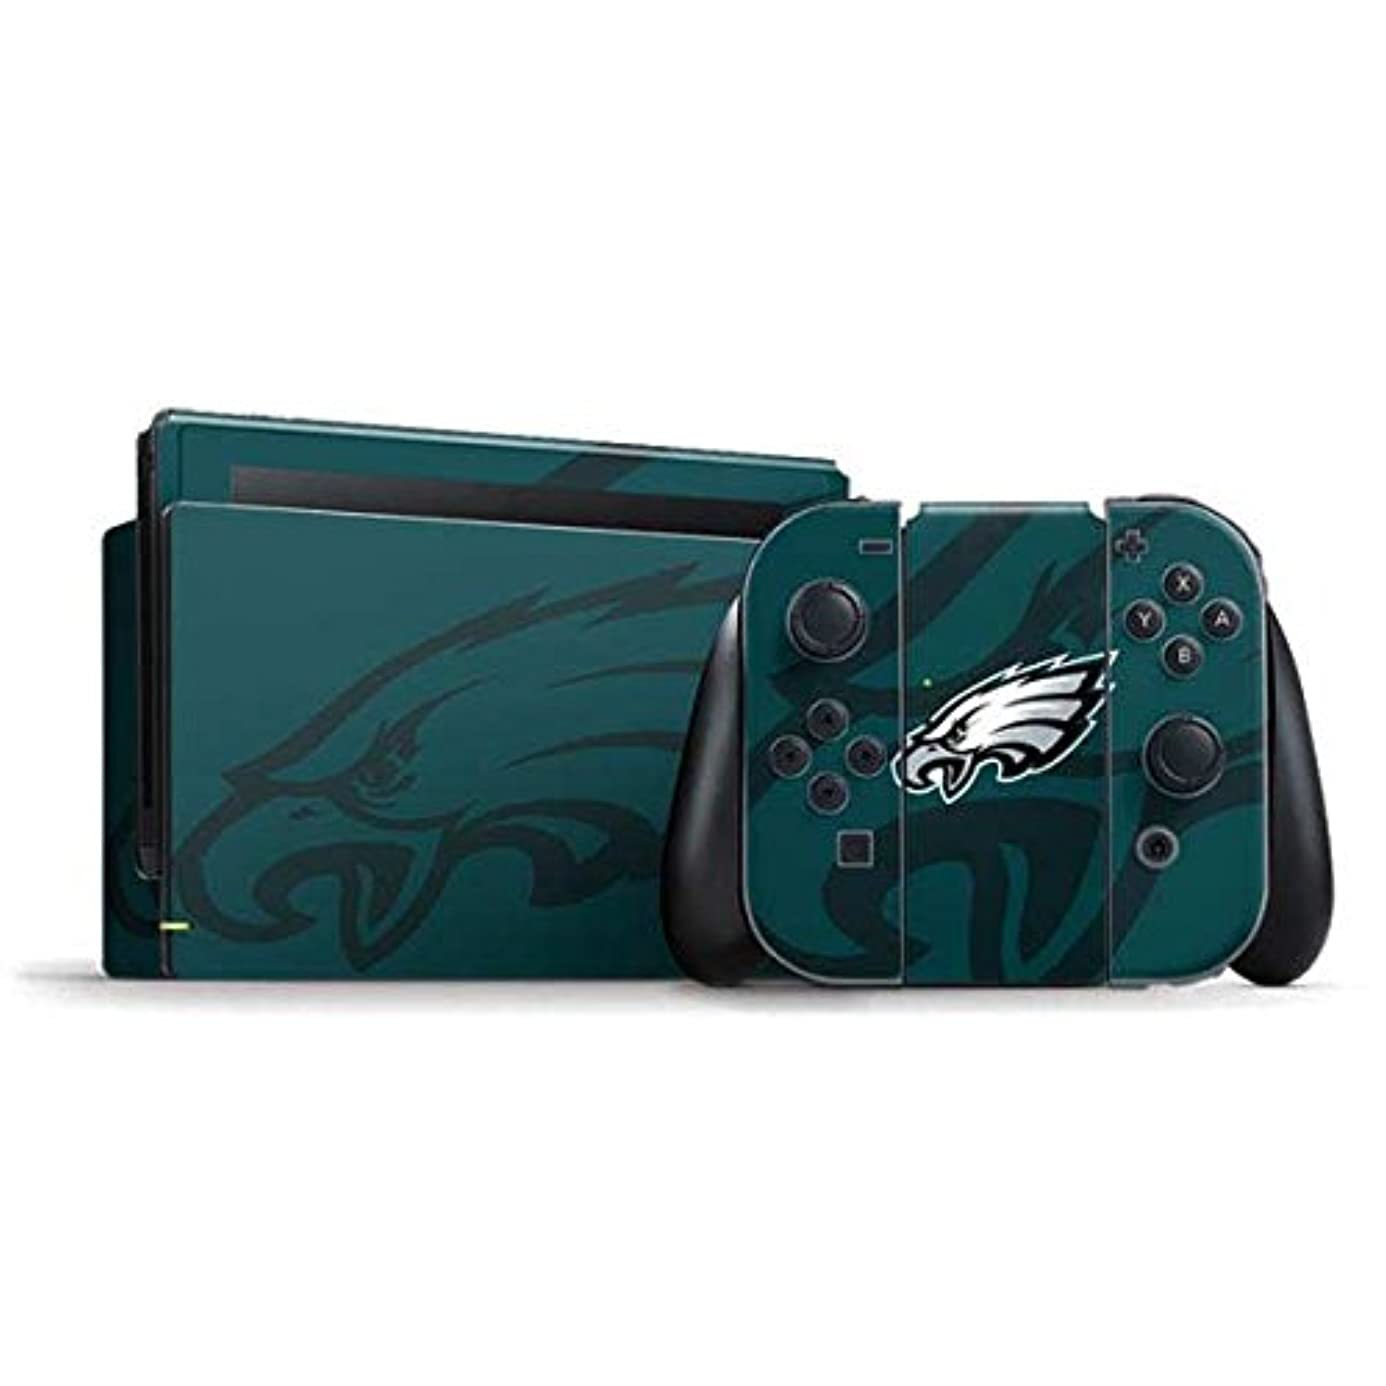 NFL Philadelphia Eagles Nintendo Switch Bundle Skin - Philadelphia Eagles Double Vision Vinyl Decal Skin For Your Switch Bundle